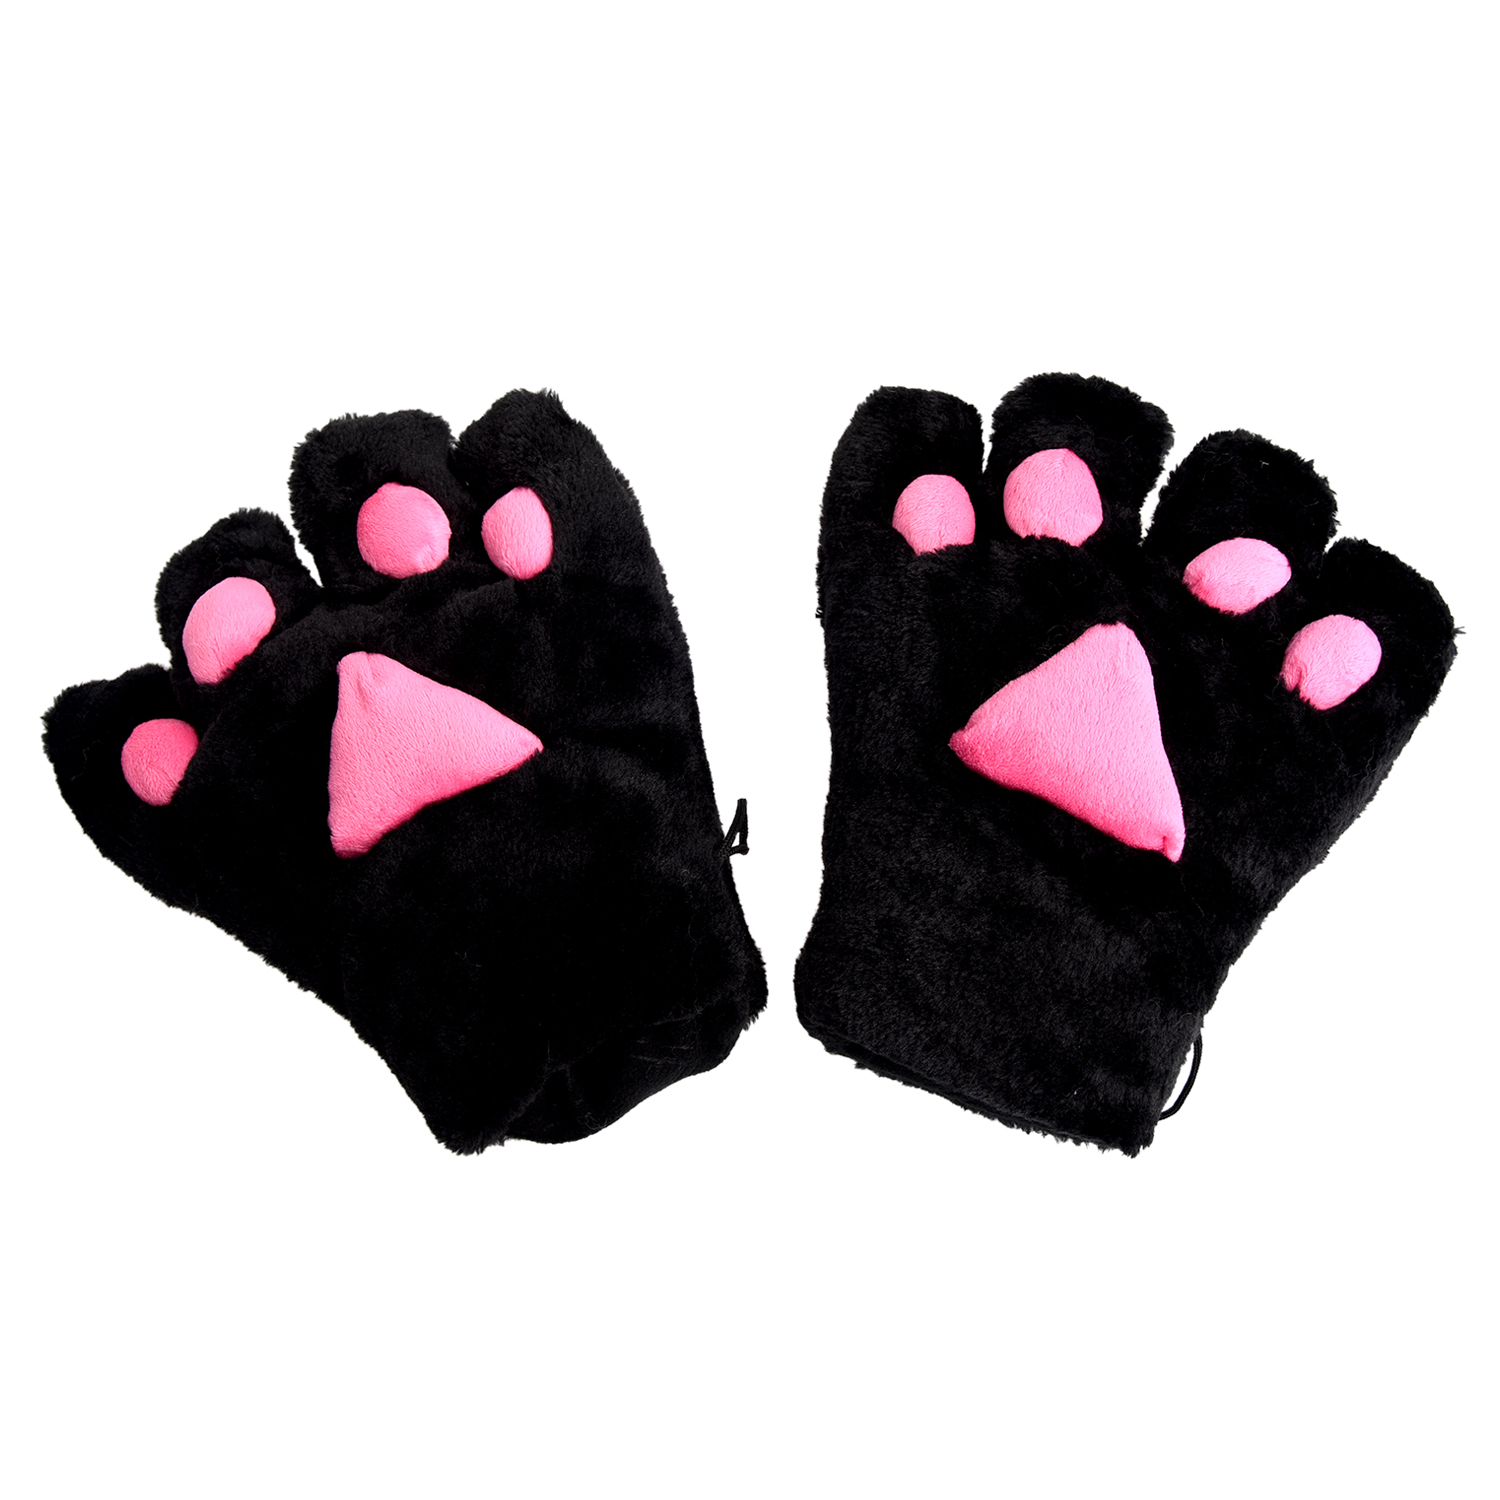 Hot 2 X Glove Cat's Paw Plush Costume For Cosplay - Black